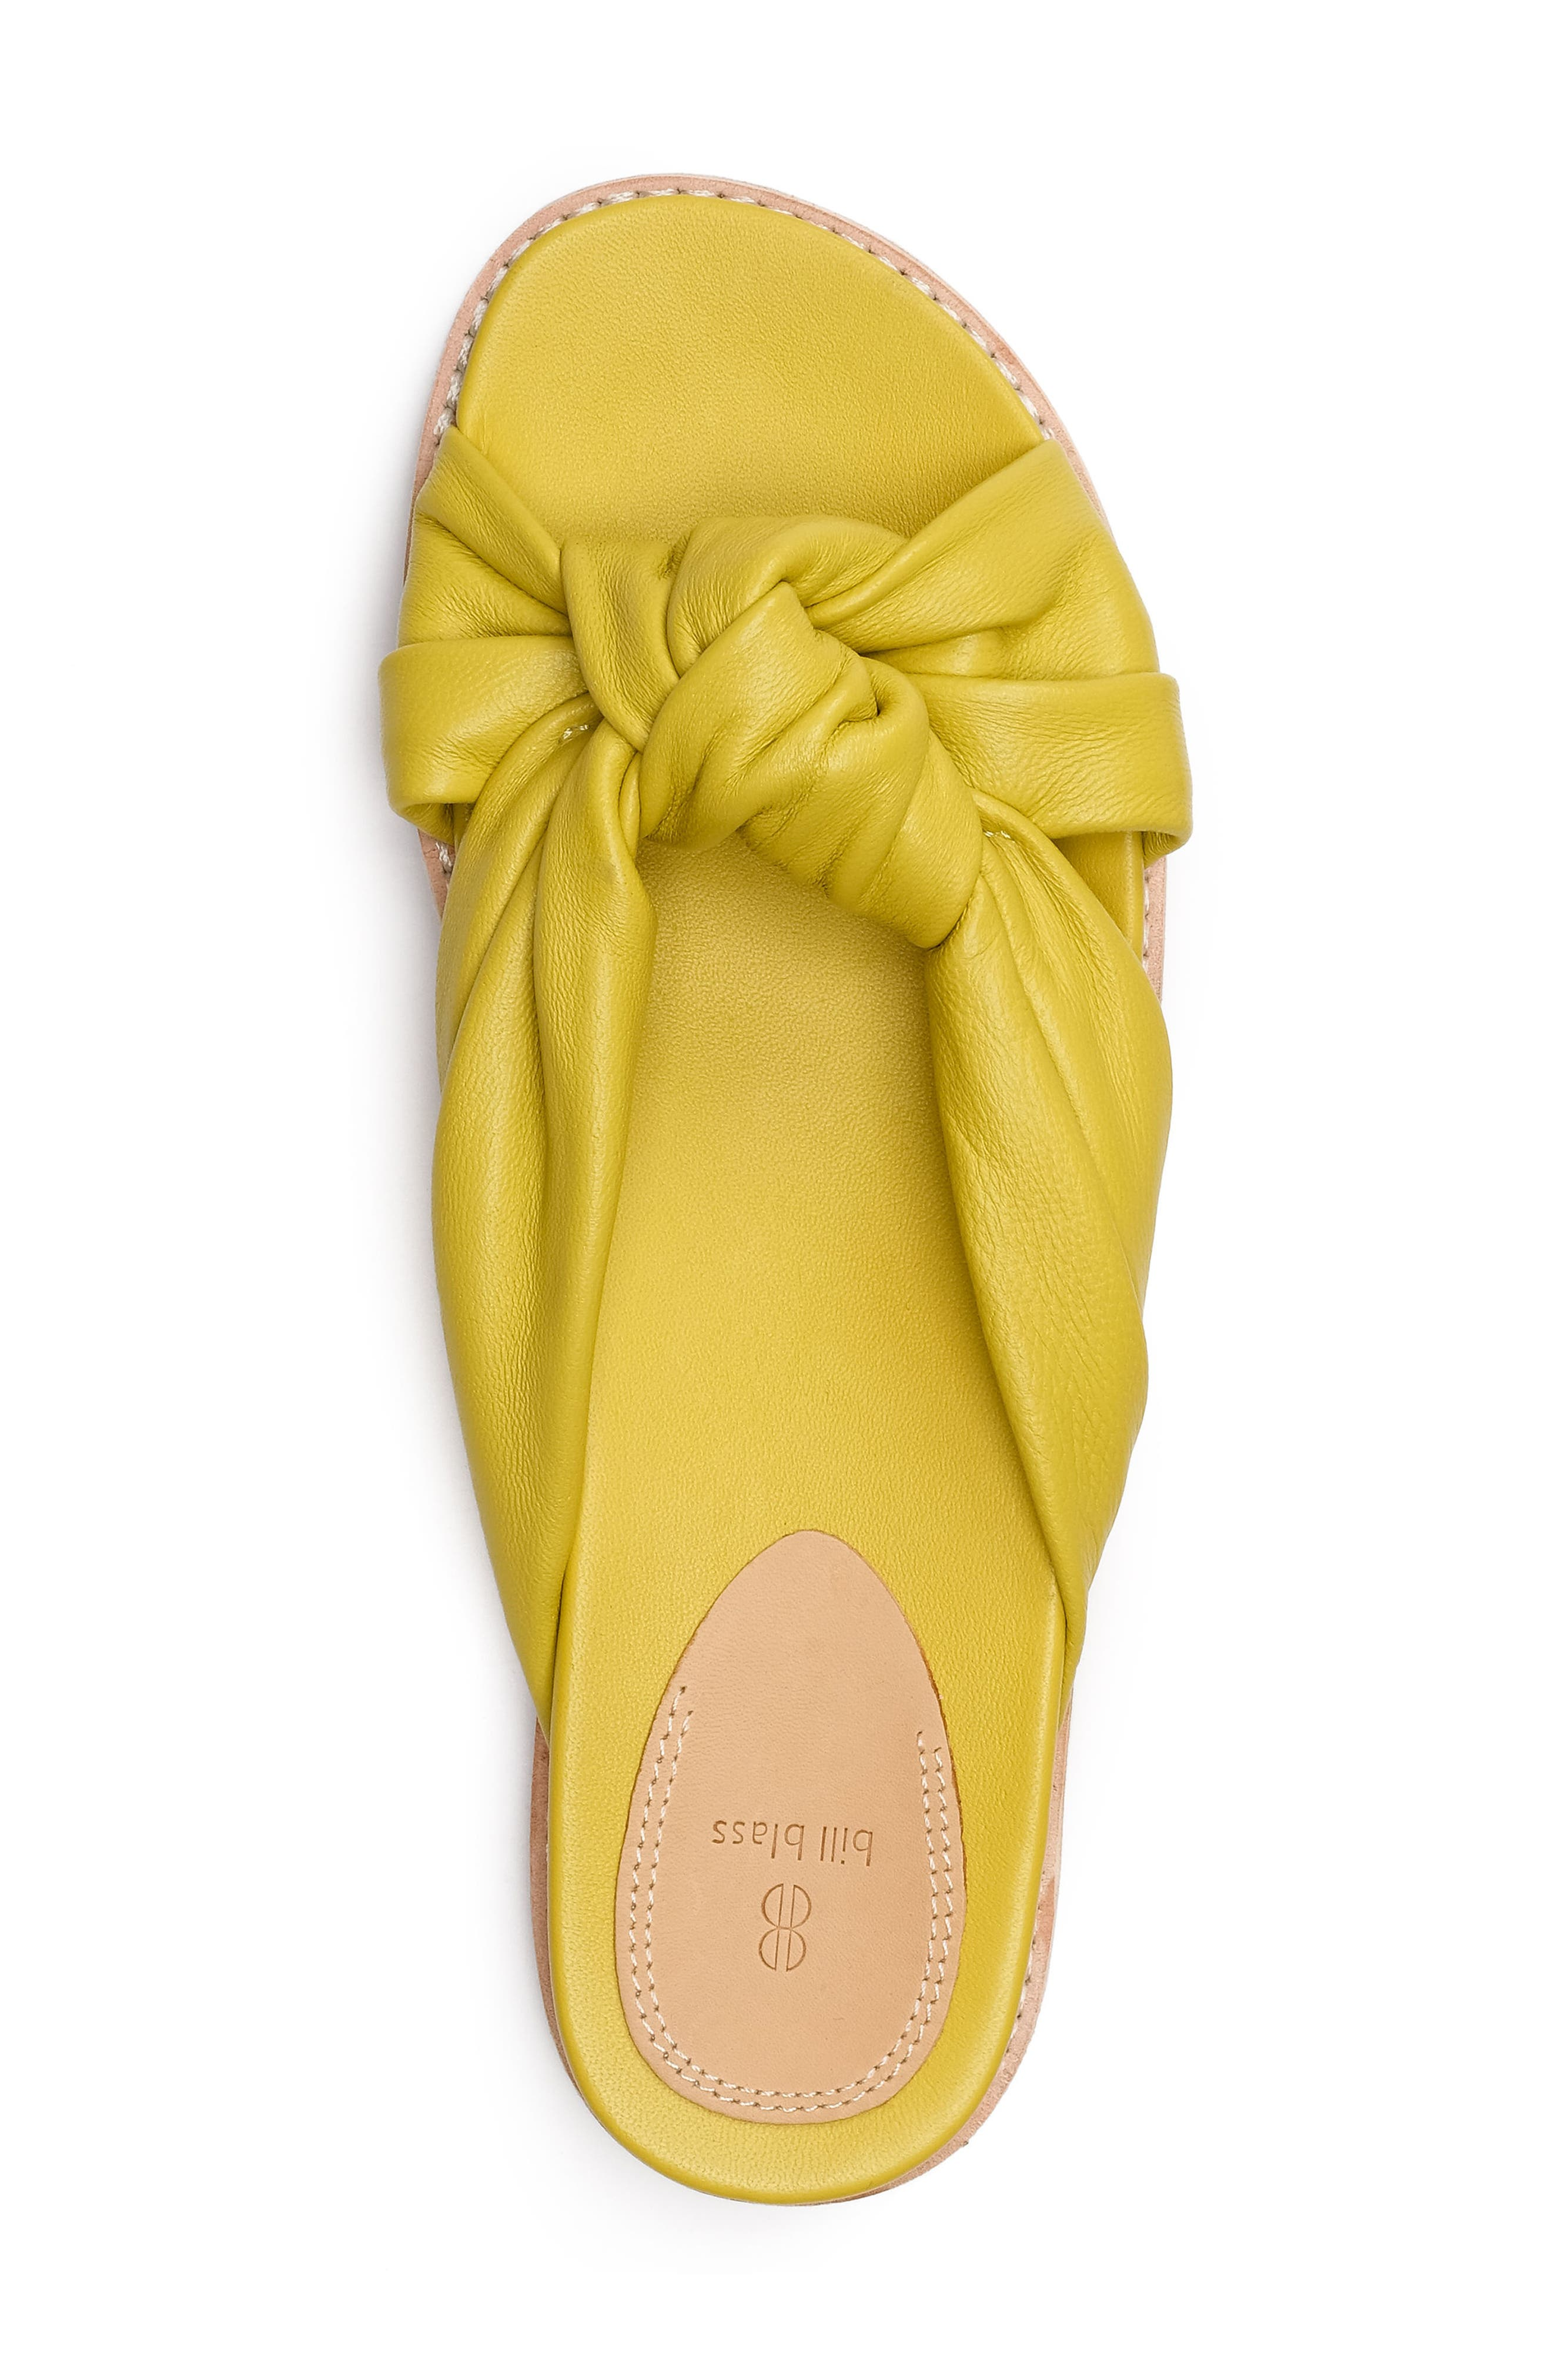 Padget Knotted Slide Sandal,                             Alternate thumbnail 4, color,                             Yellow